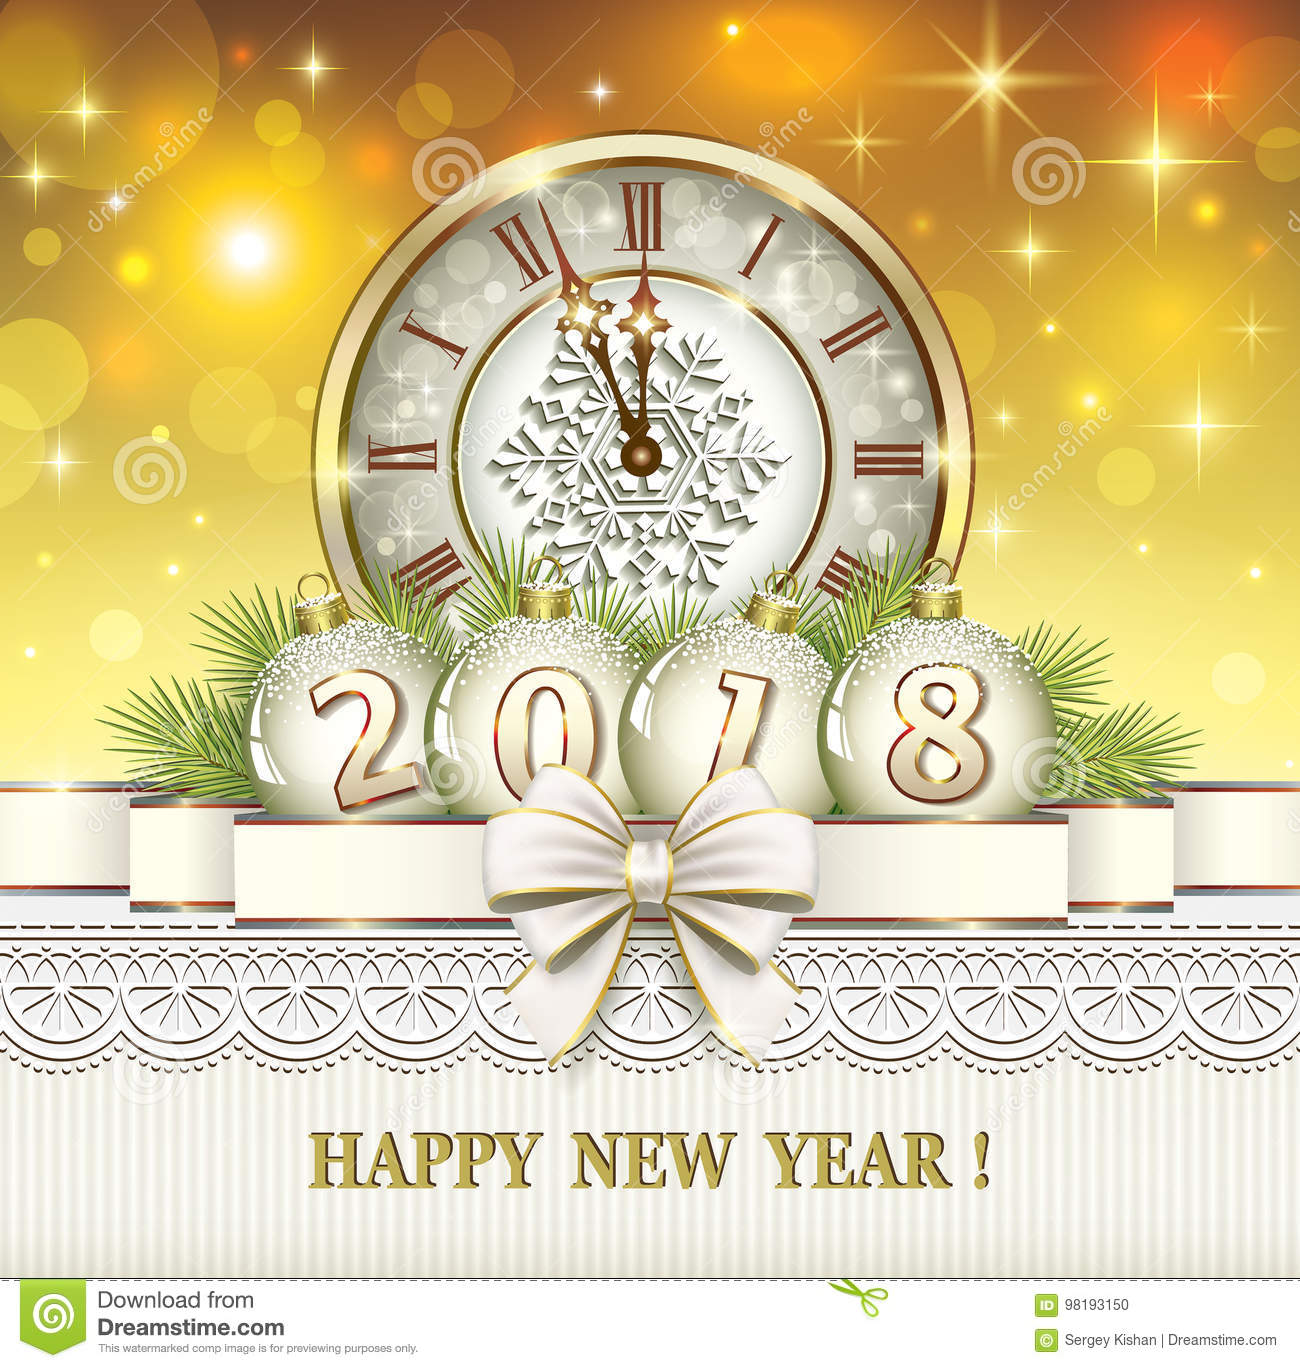 Merry Christmas And Happy New Year Stock Vector